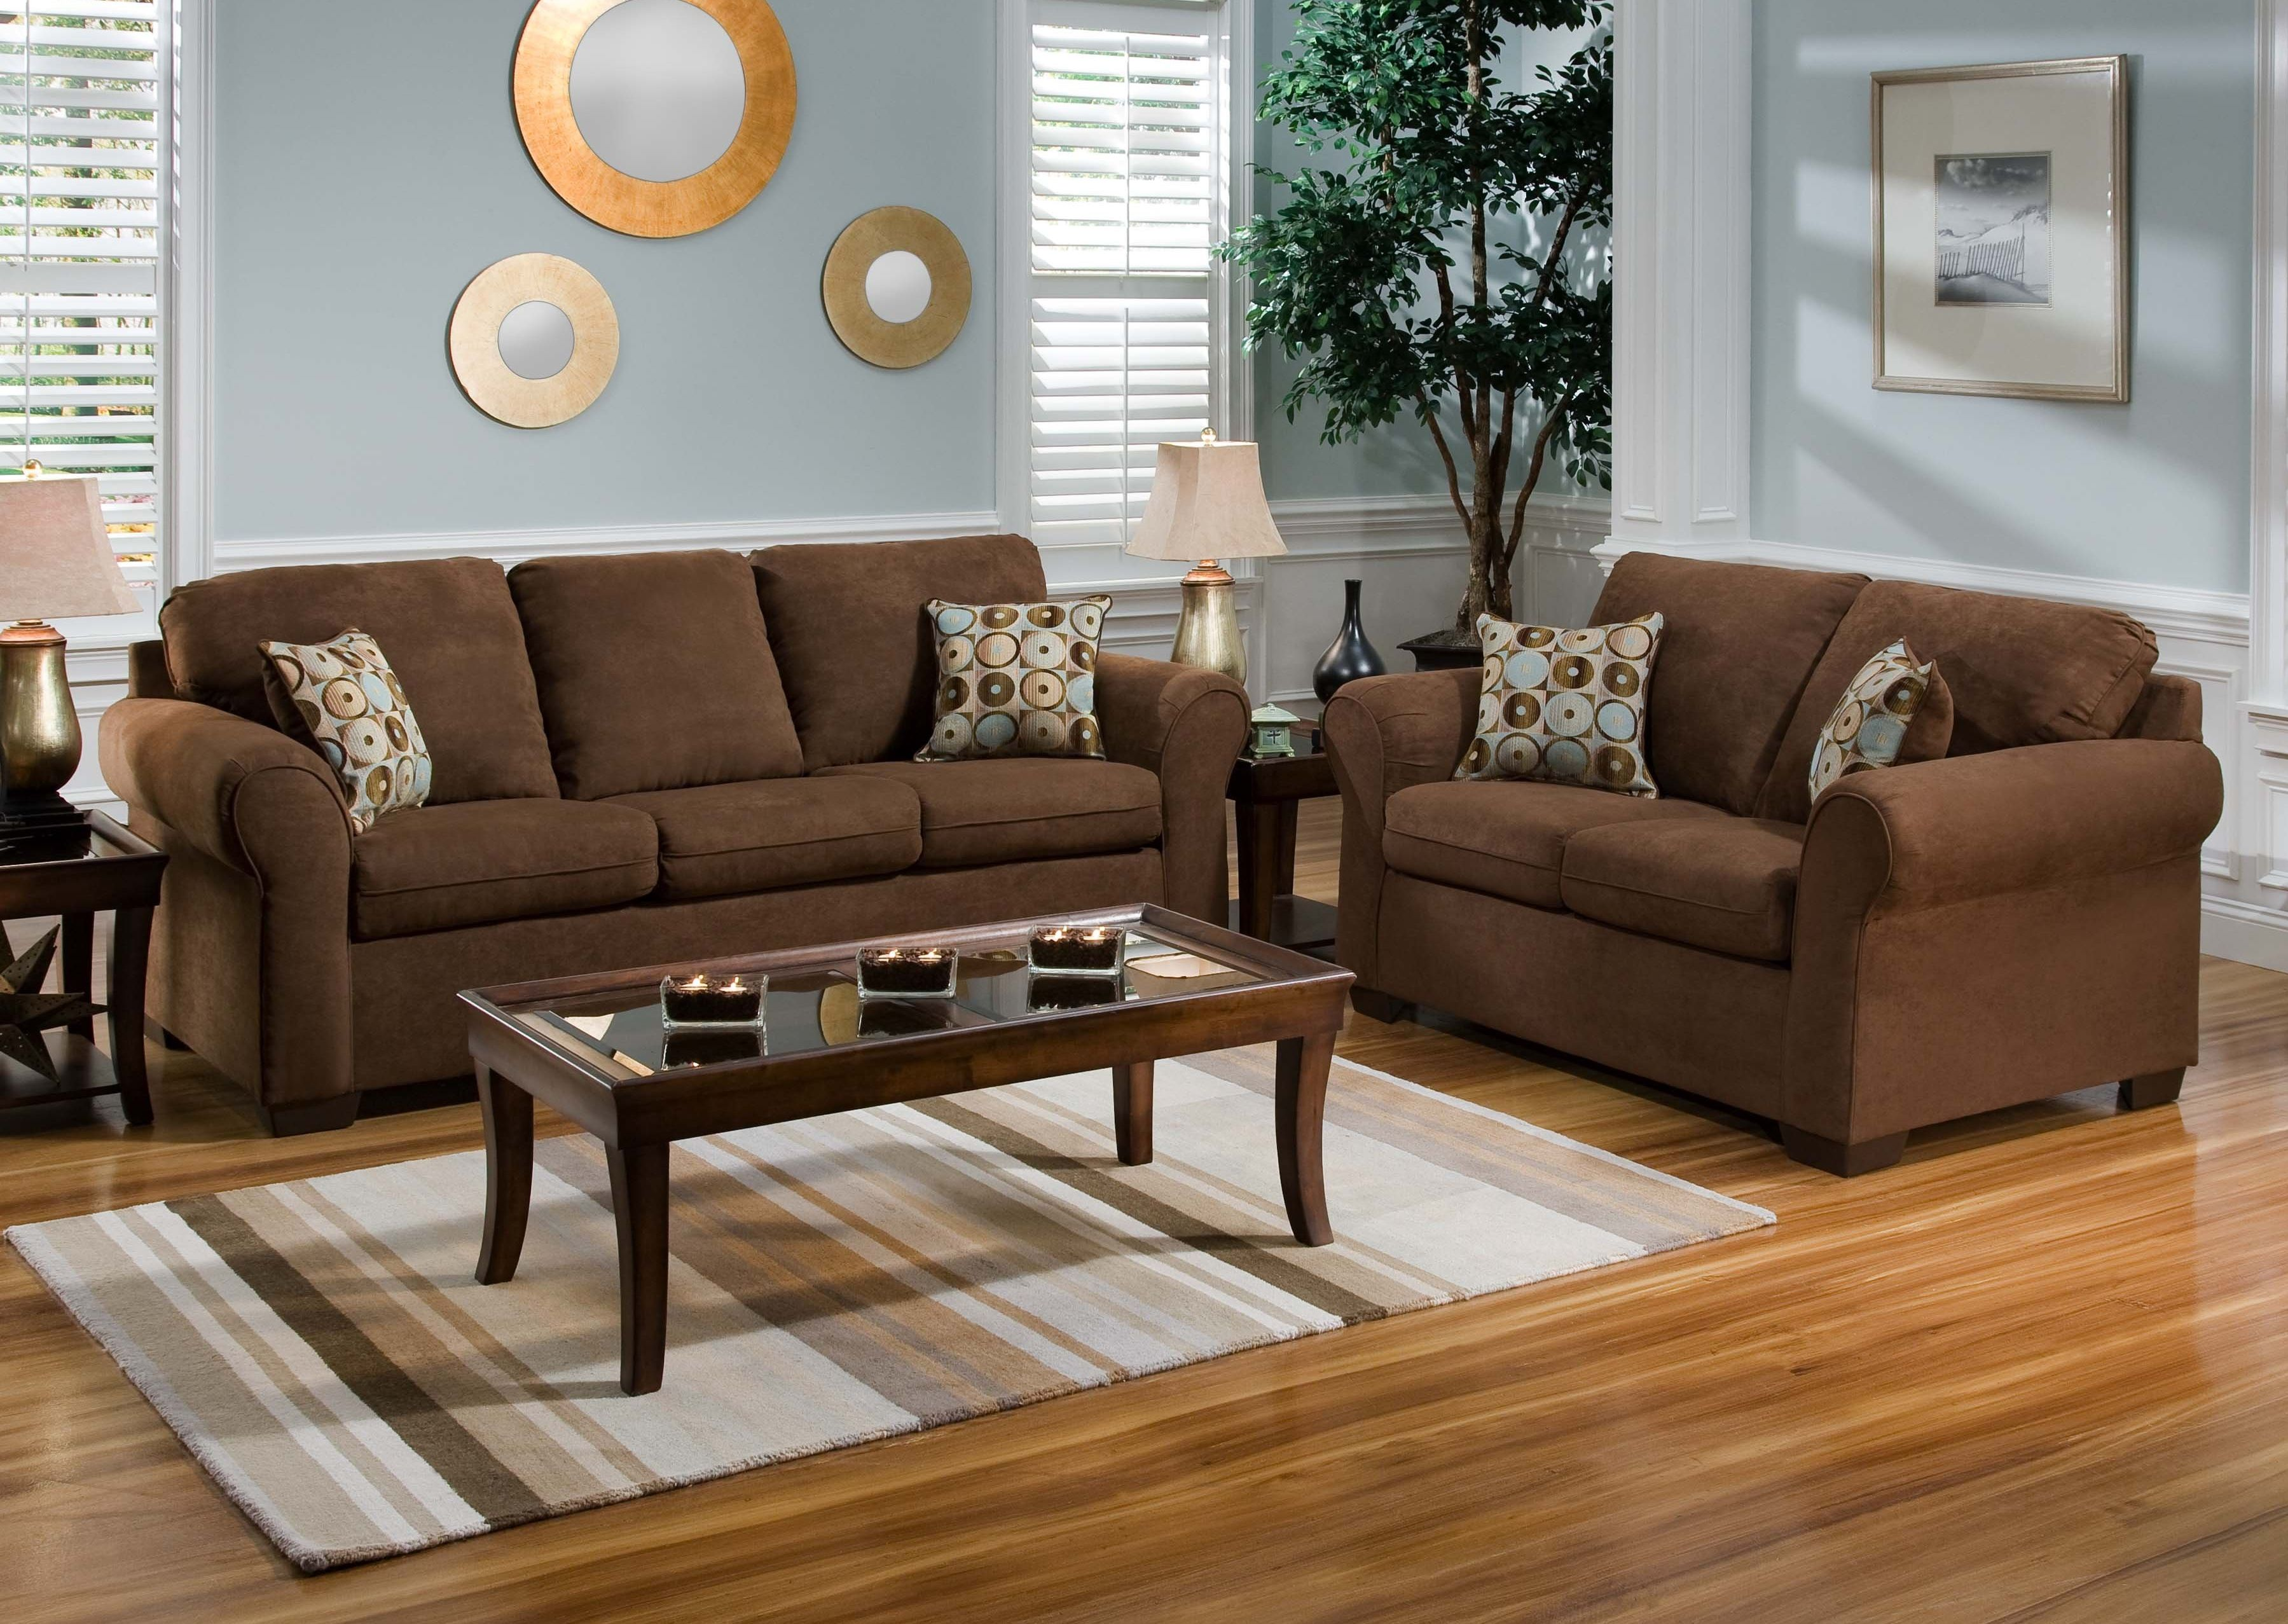 Sitting Room Ideas With Brown Sofas